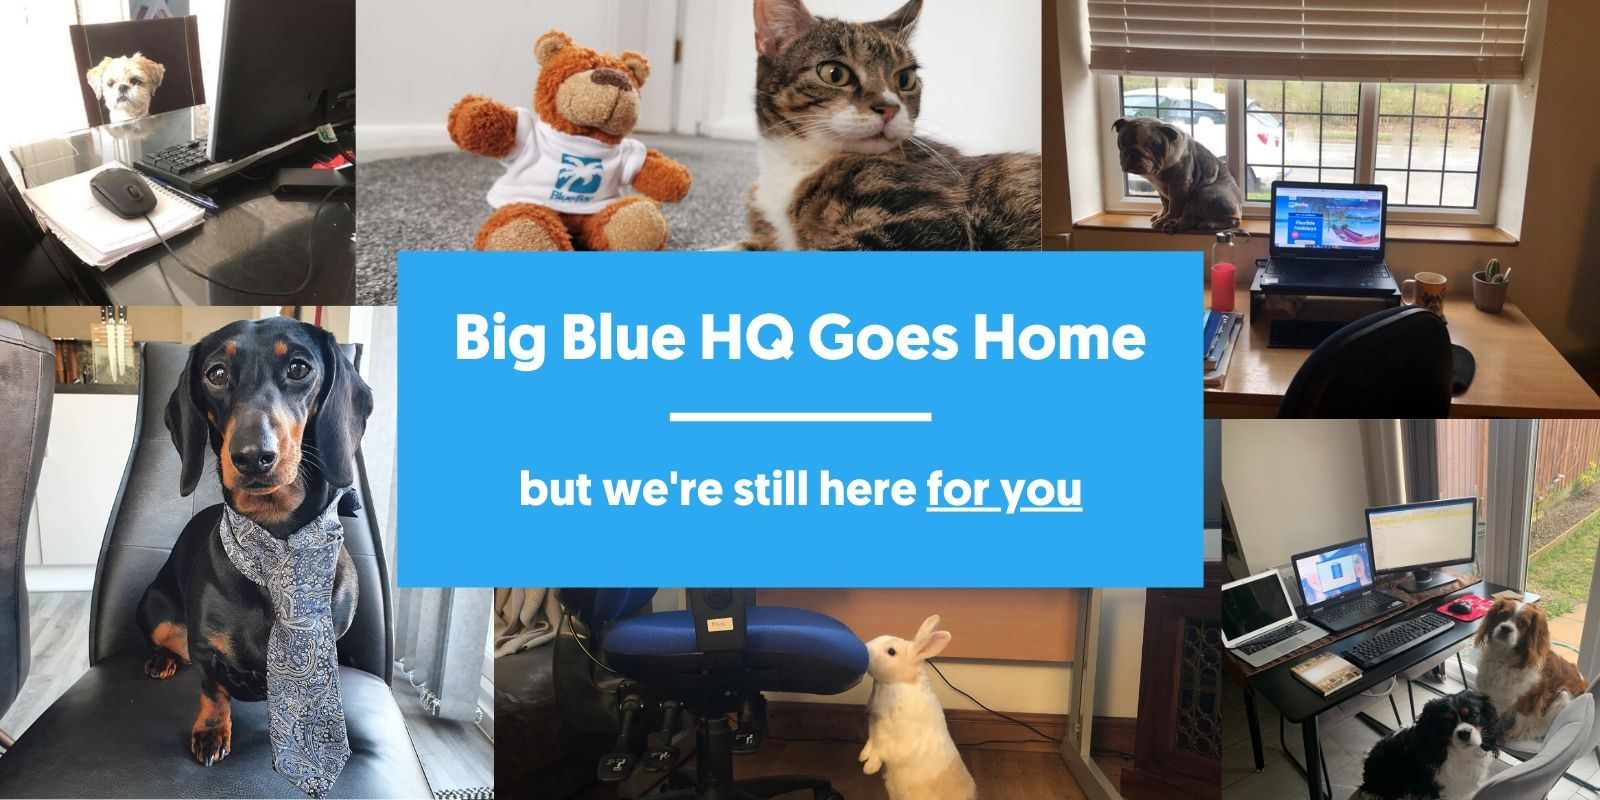 Blue Bay HQ Goes Home